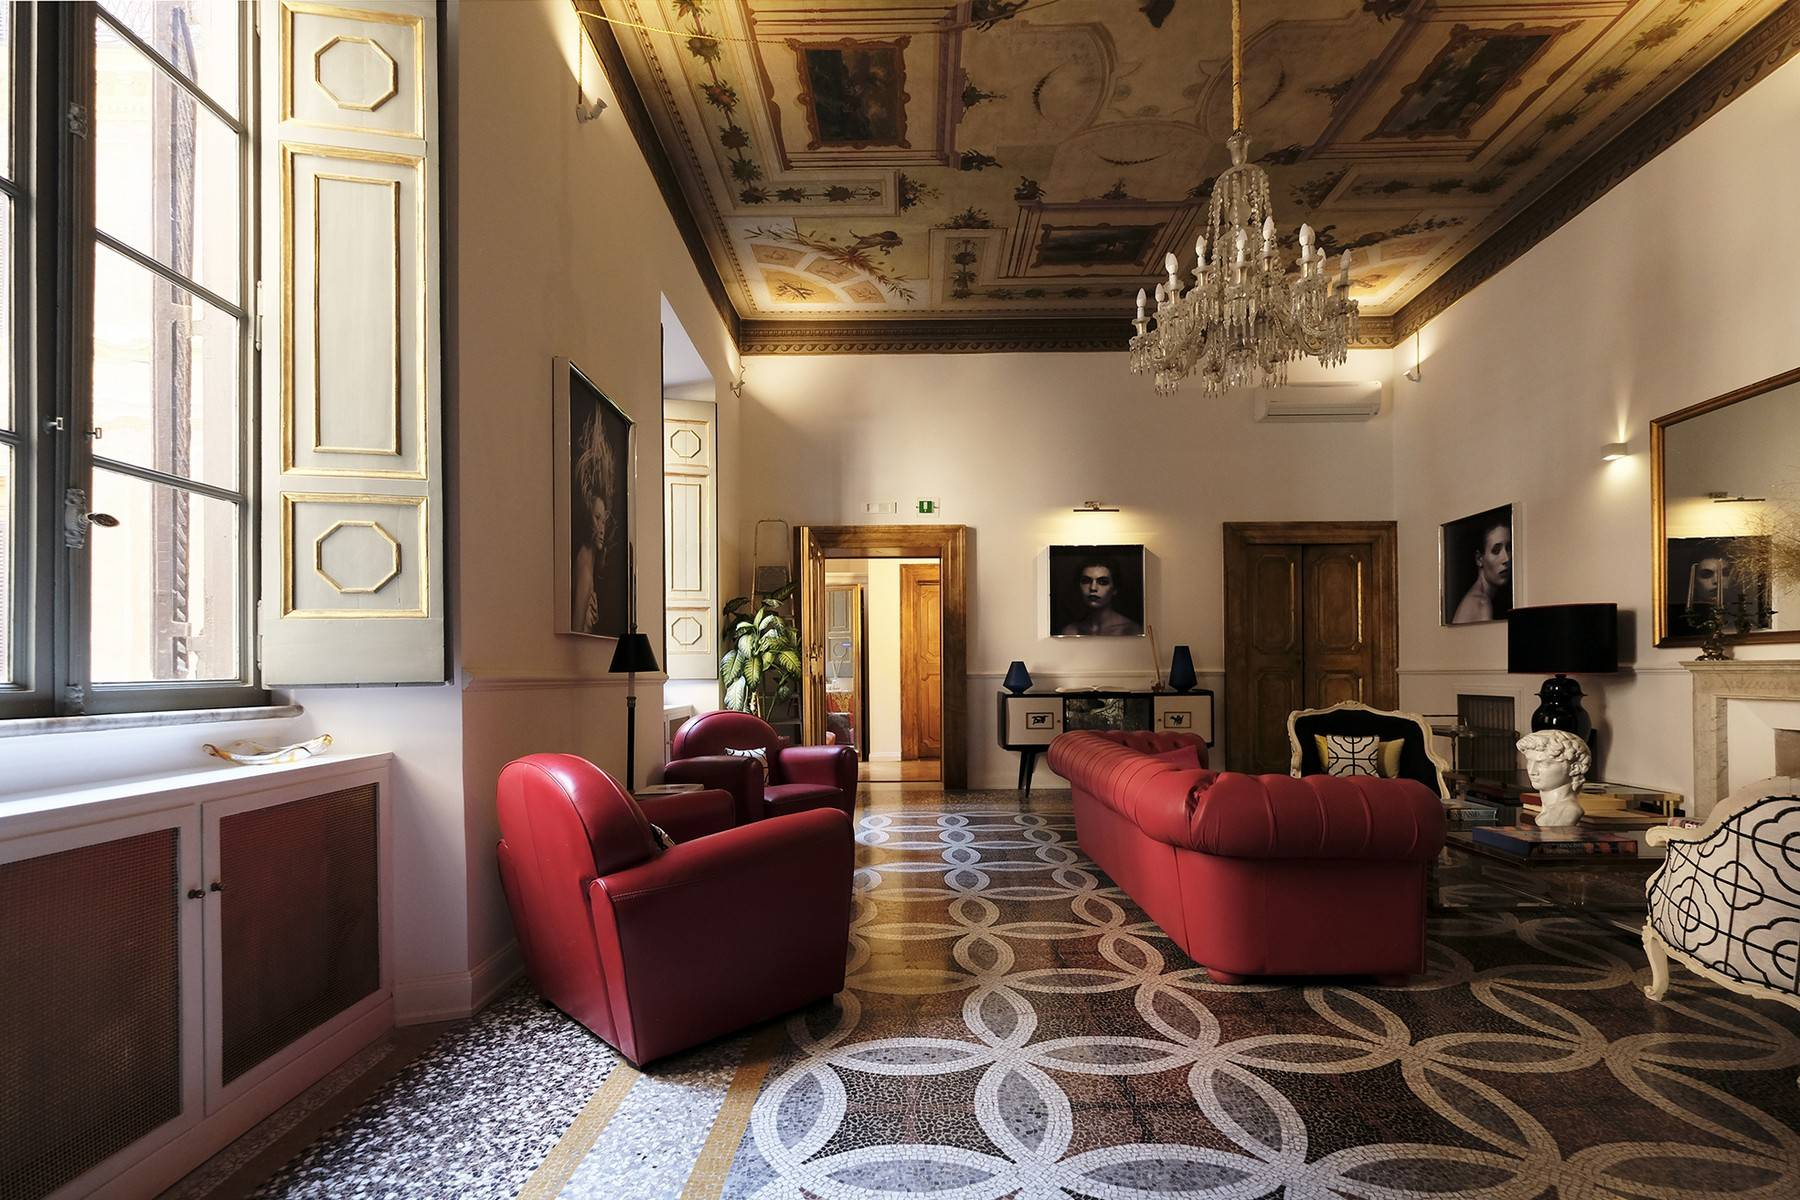 Stunning apartment in the heart of Baroque Rome - 2